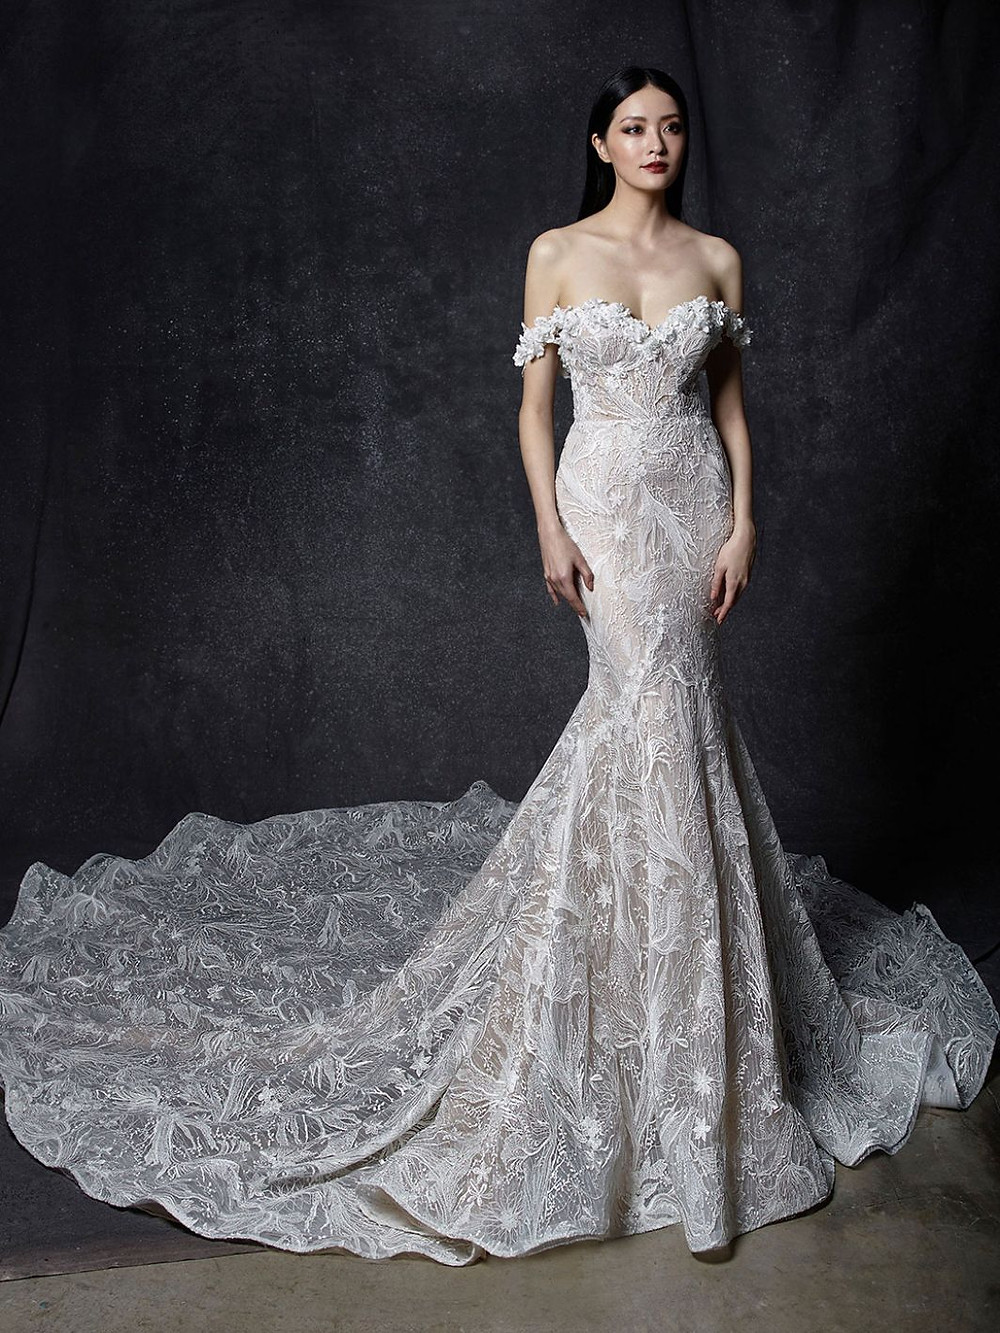 An Enzoani off the shoulder lace mermaid wedding dress with a sweetheart neckline and a long train